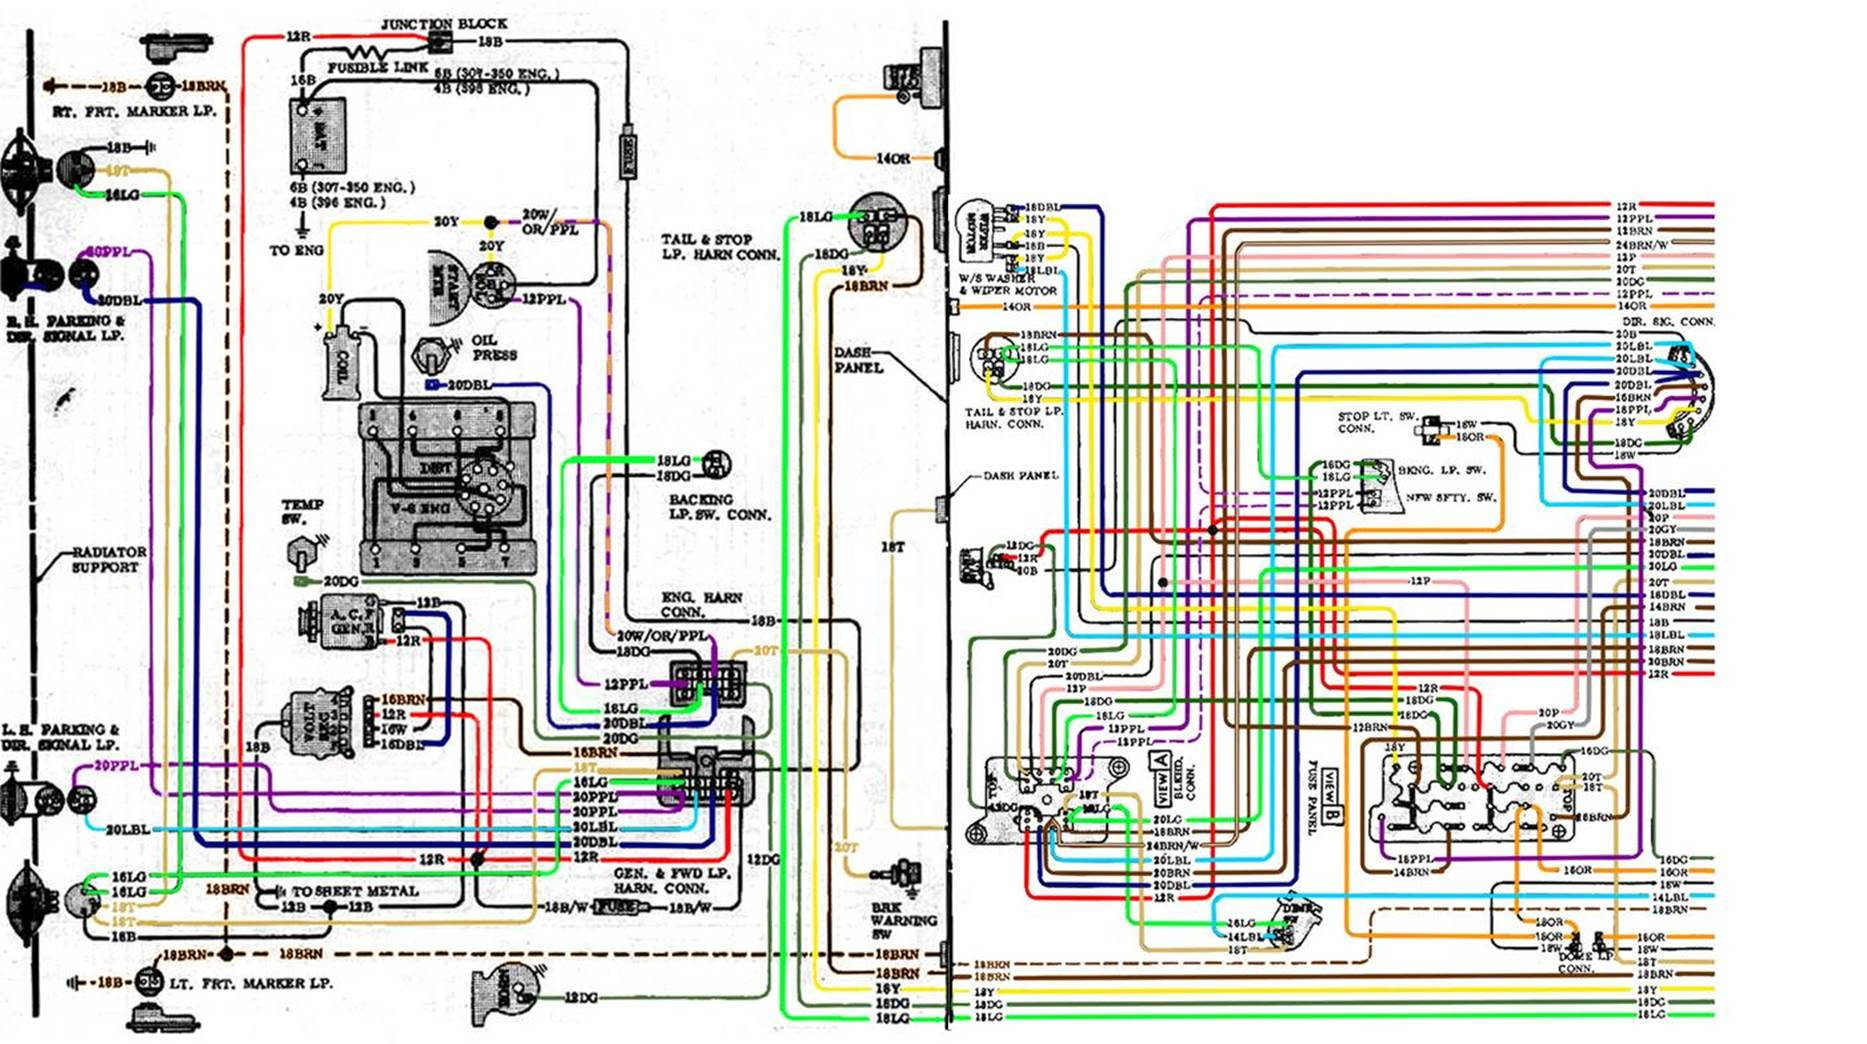 image002 67 72 chevy wiring diagram 1967 chevelle wiring diagram pdf at soozxer.org